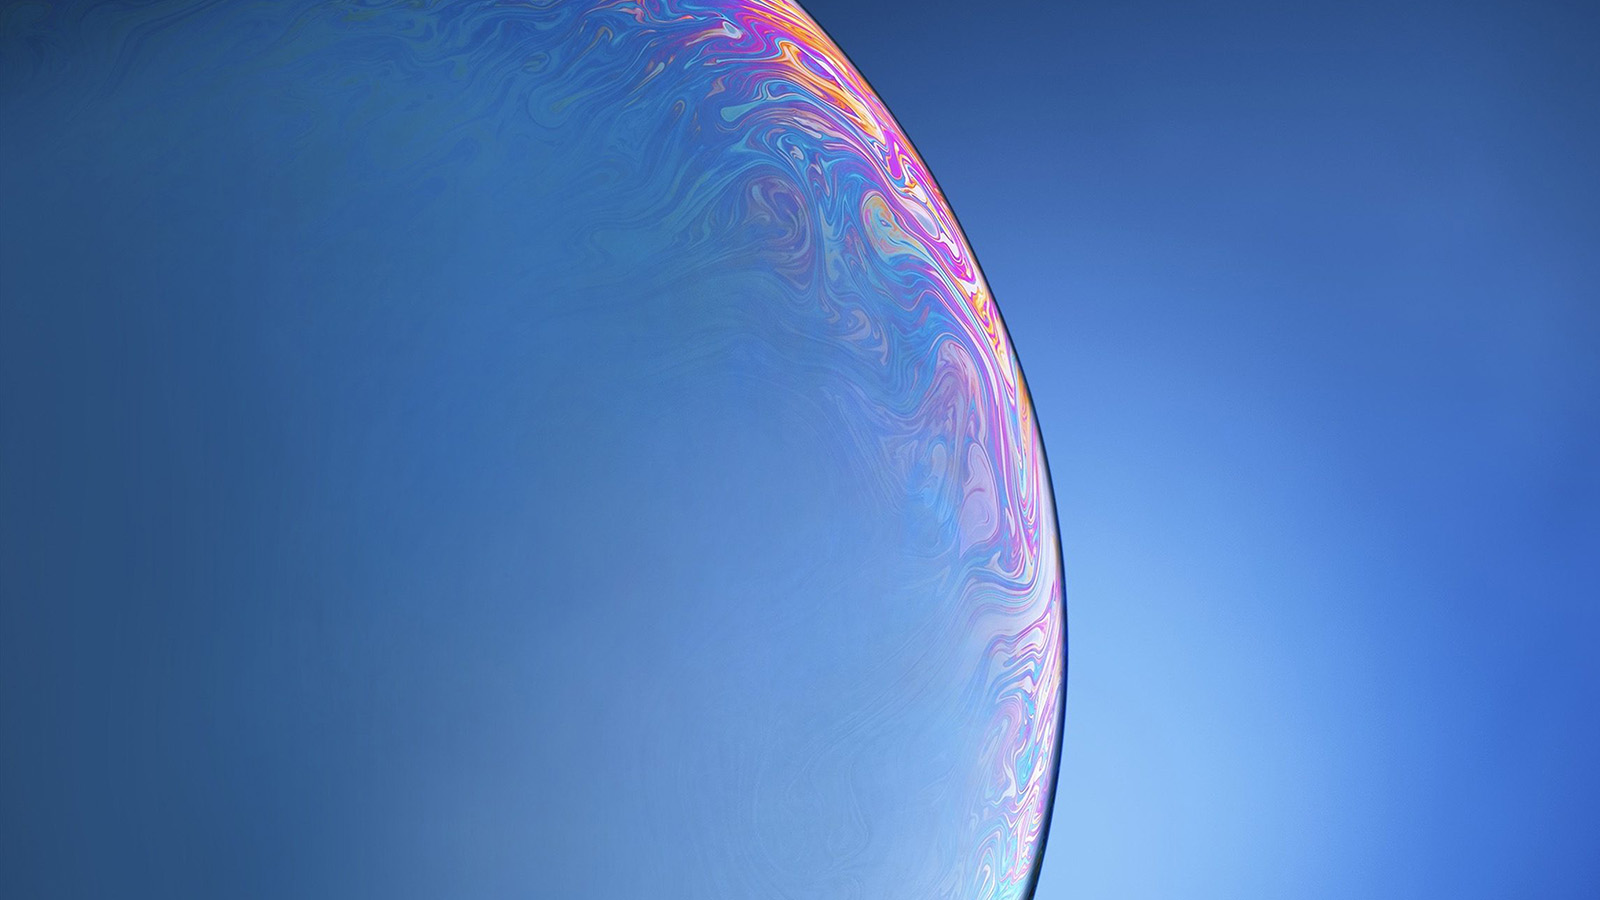 Bg42-blue-apple-iphone-xs-max-official-art-bubble-wallpaper